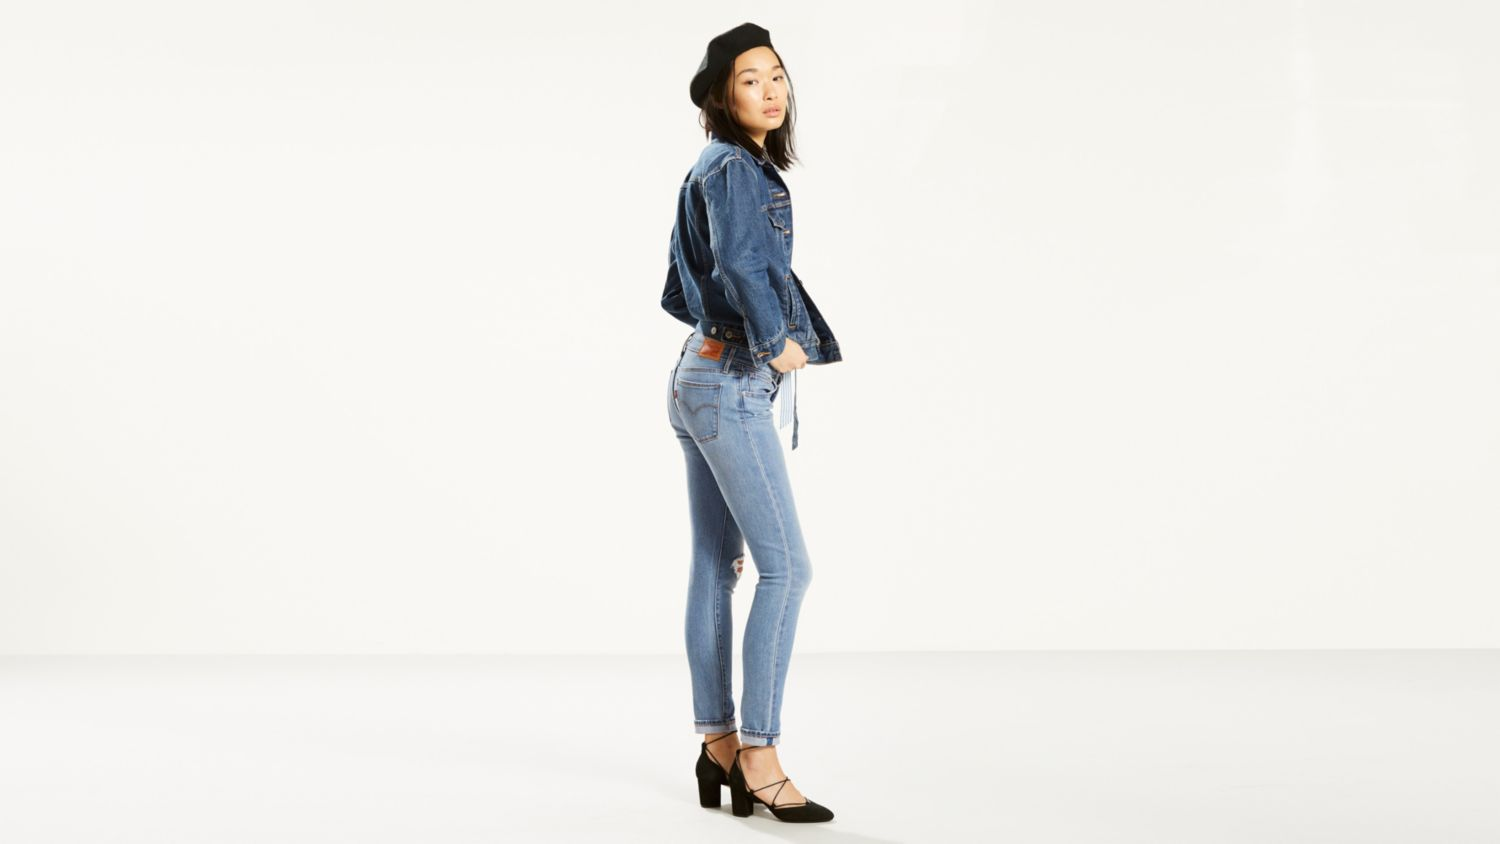 A model wearing a denim jacket and jeans